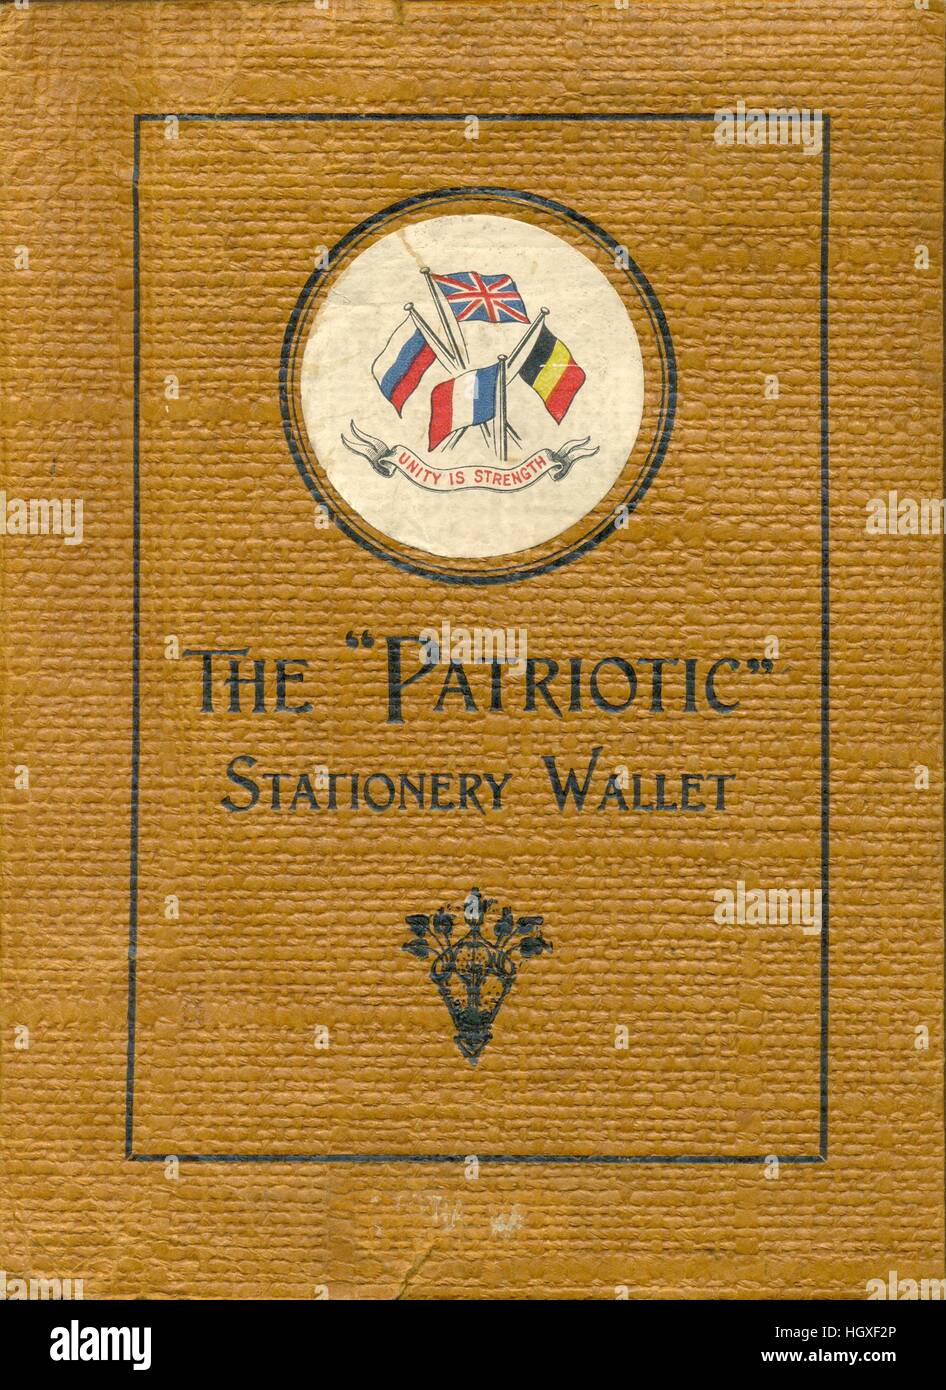 the patriotic stationery wallet a gift filled with writing paper